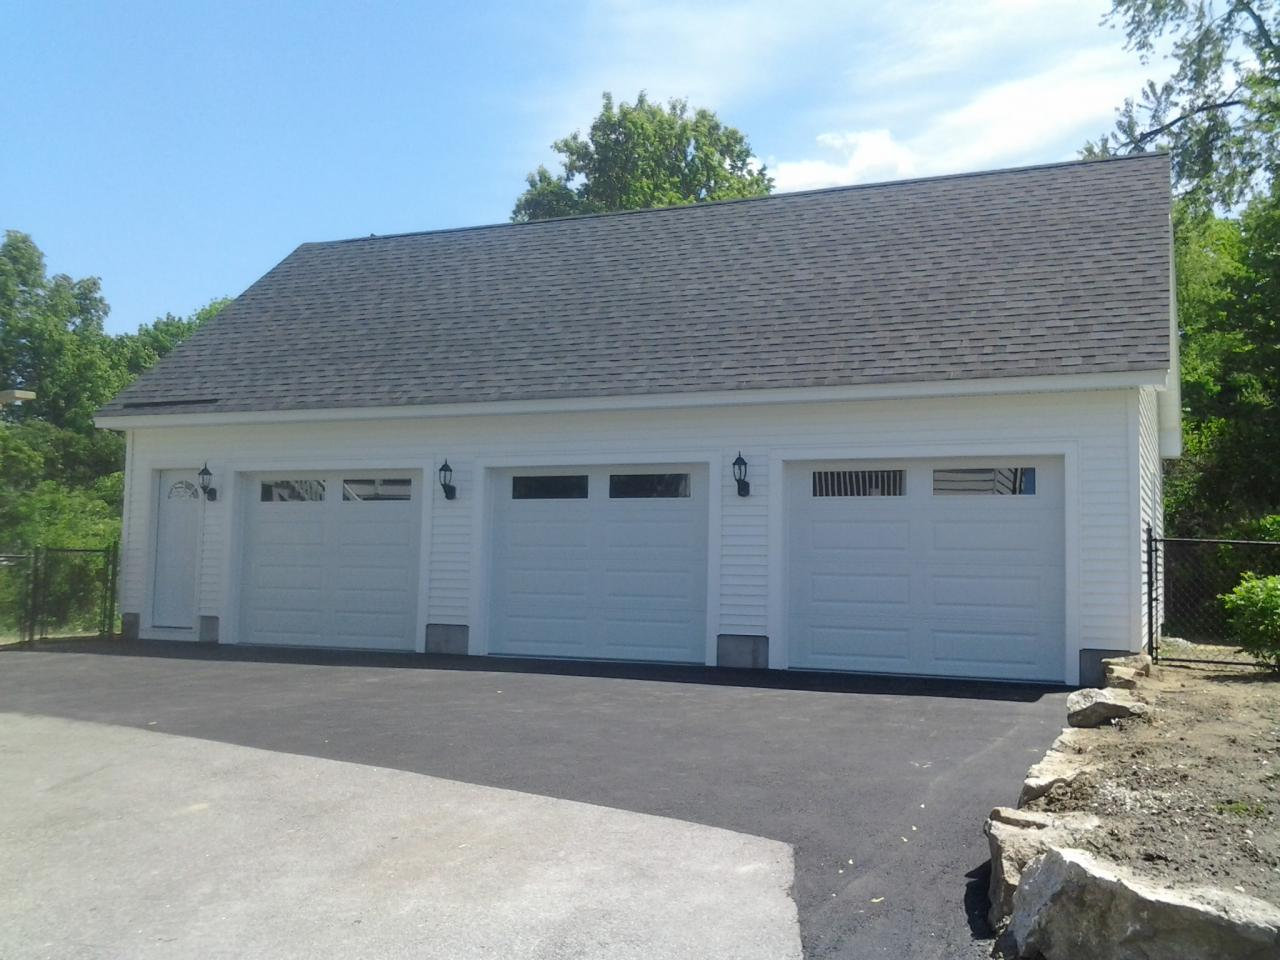 Jws custom decks garages603 494 3299 24x40 garage with loft solutioingenieria Images